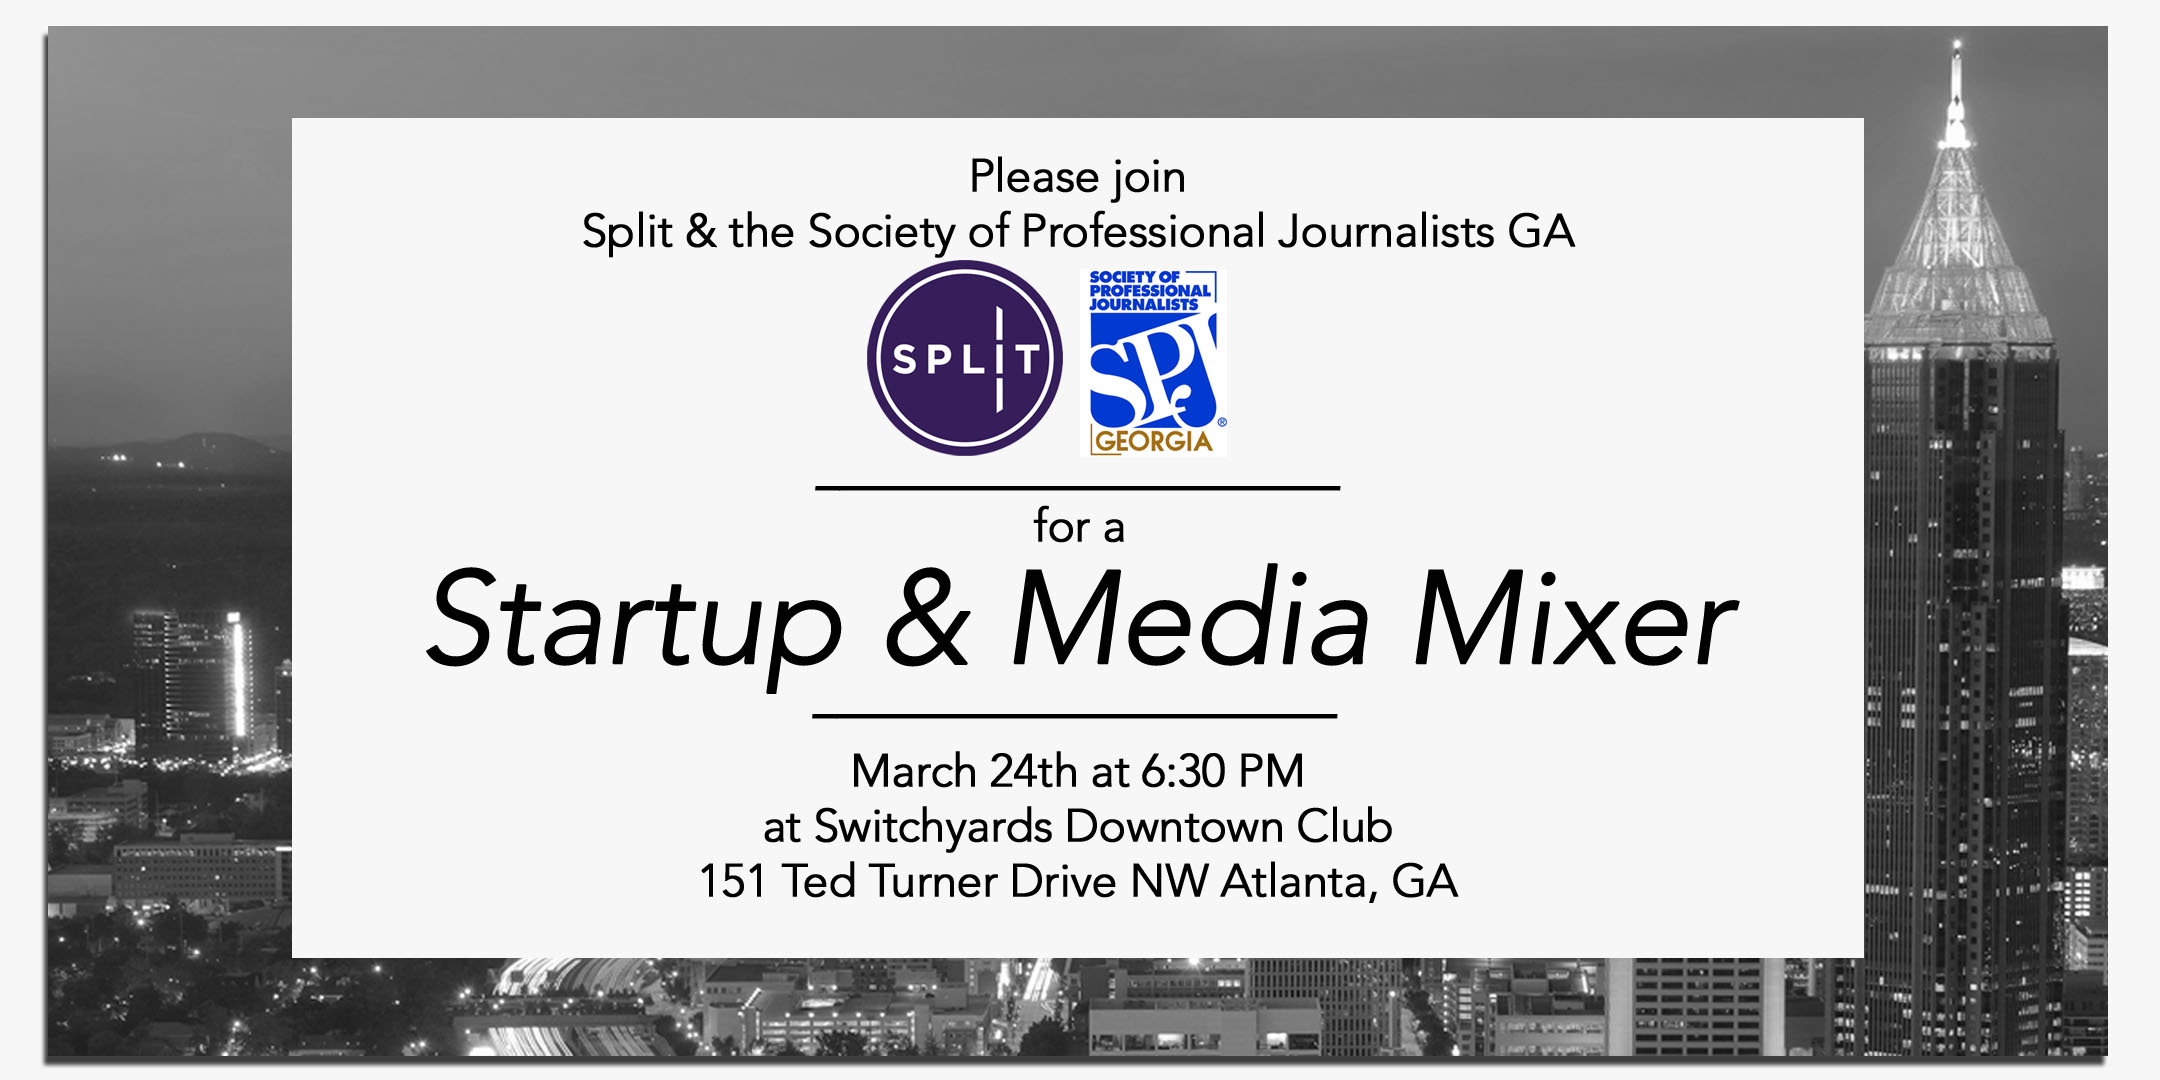 Split and SPJ invite you to a Startup & Media Mixer